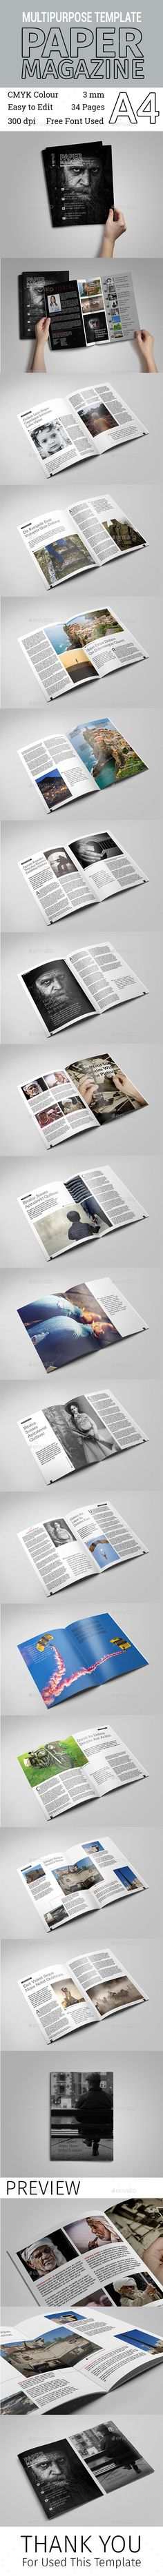 Multipurpose Paper Magazine Template InDesign INDD #design Download: http://graphicriver.net/item/multipurpose-paper-magazine-template/14120148?ref=ksioks